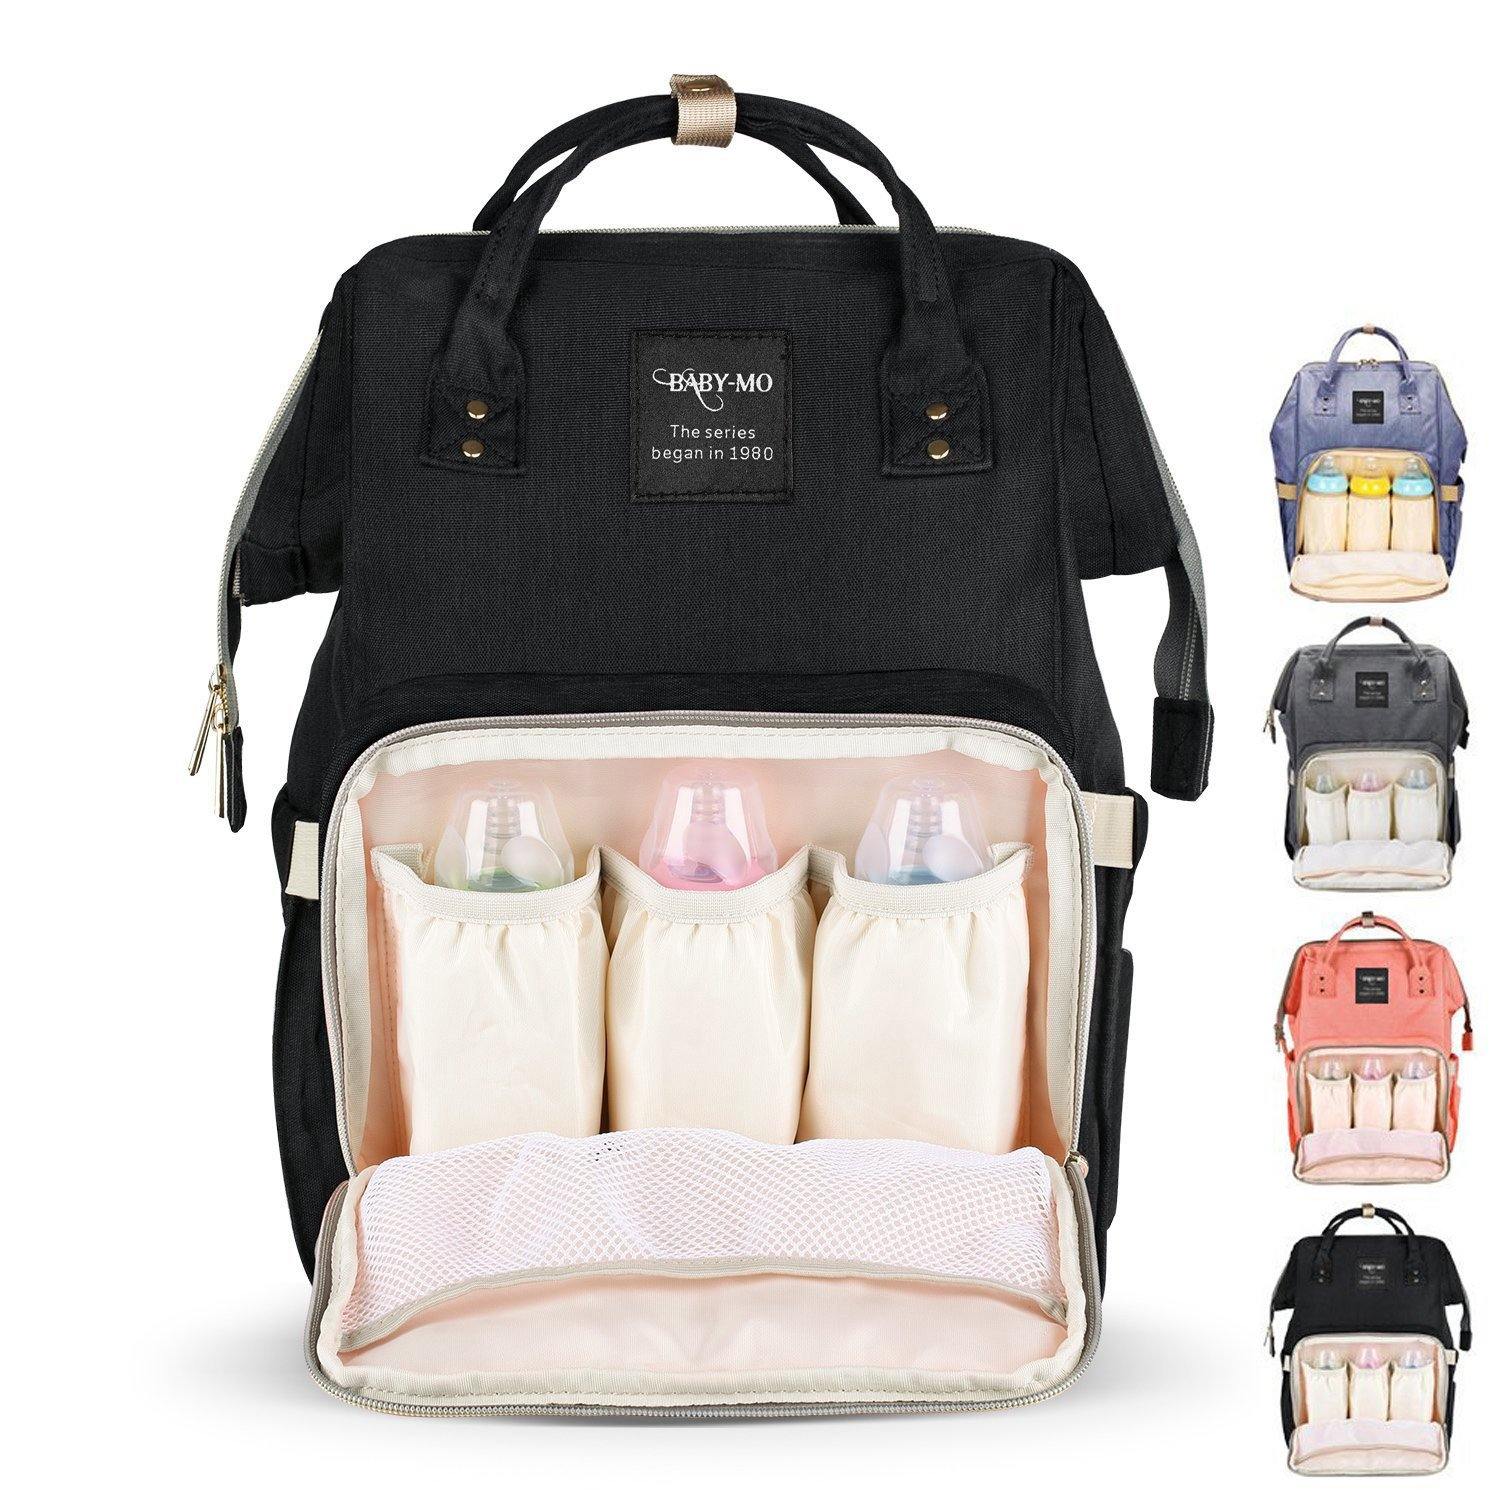 Diaper Bag Multi-Function Waterproof Travel Backpack Nappy Bag for Baby Care with Insulated Pockets, Large Capacity, Durable (Black) Beautiful Tech